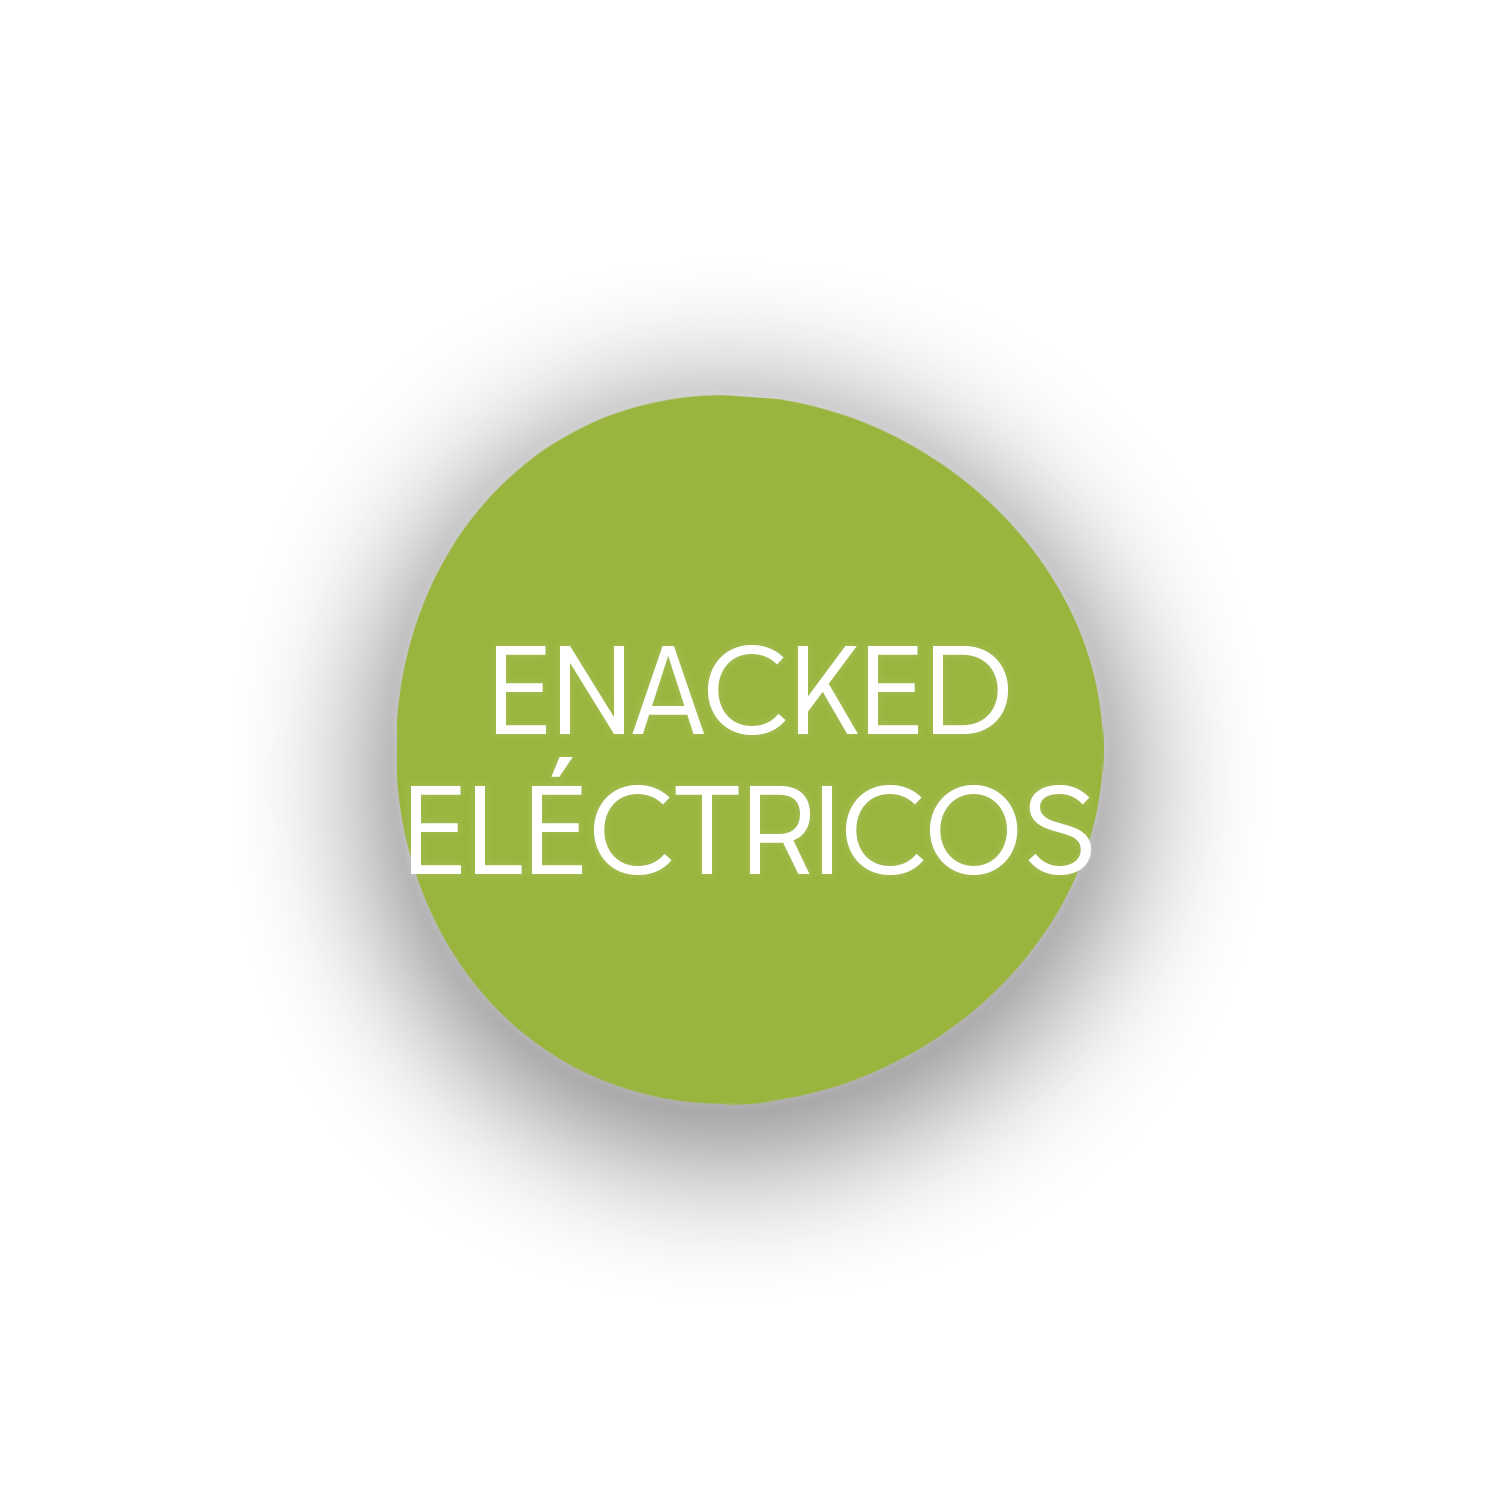 banner-enacked-electricos